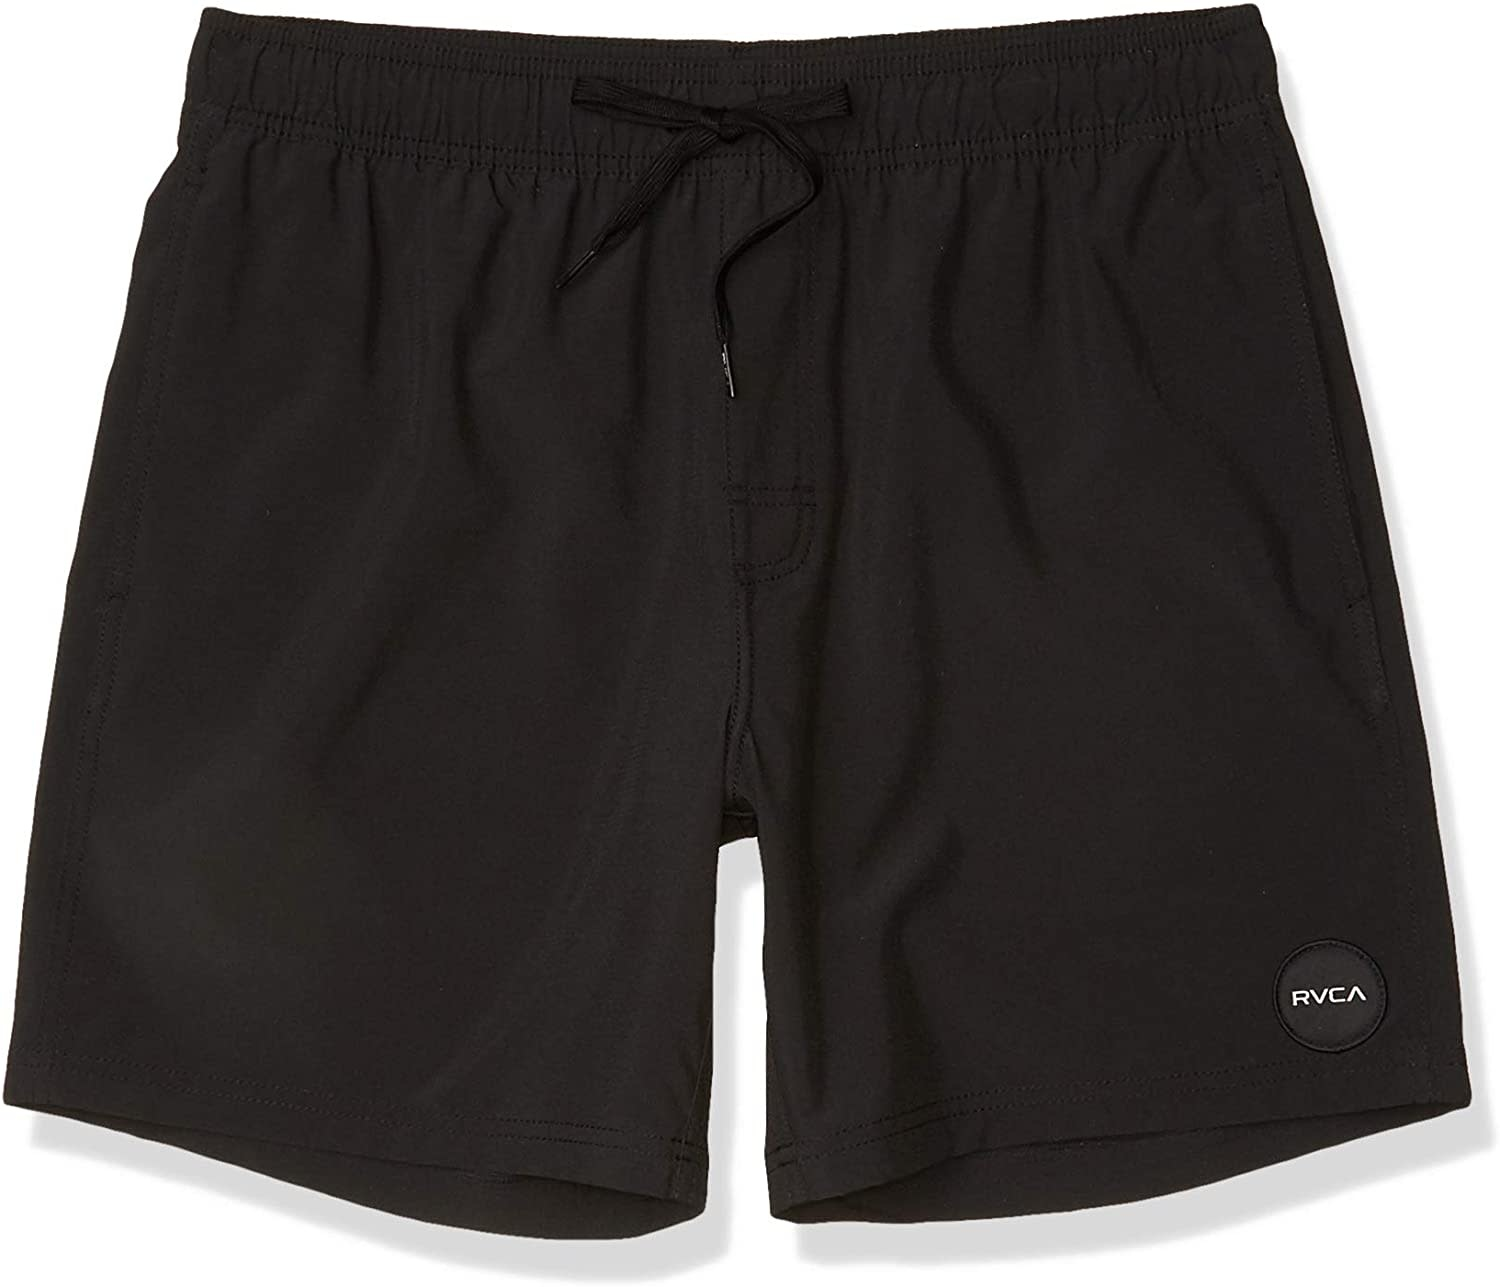 RVCA VA Elastic Trunks Black